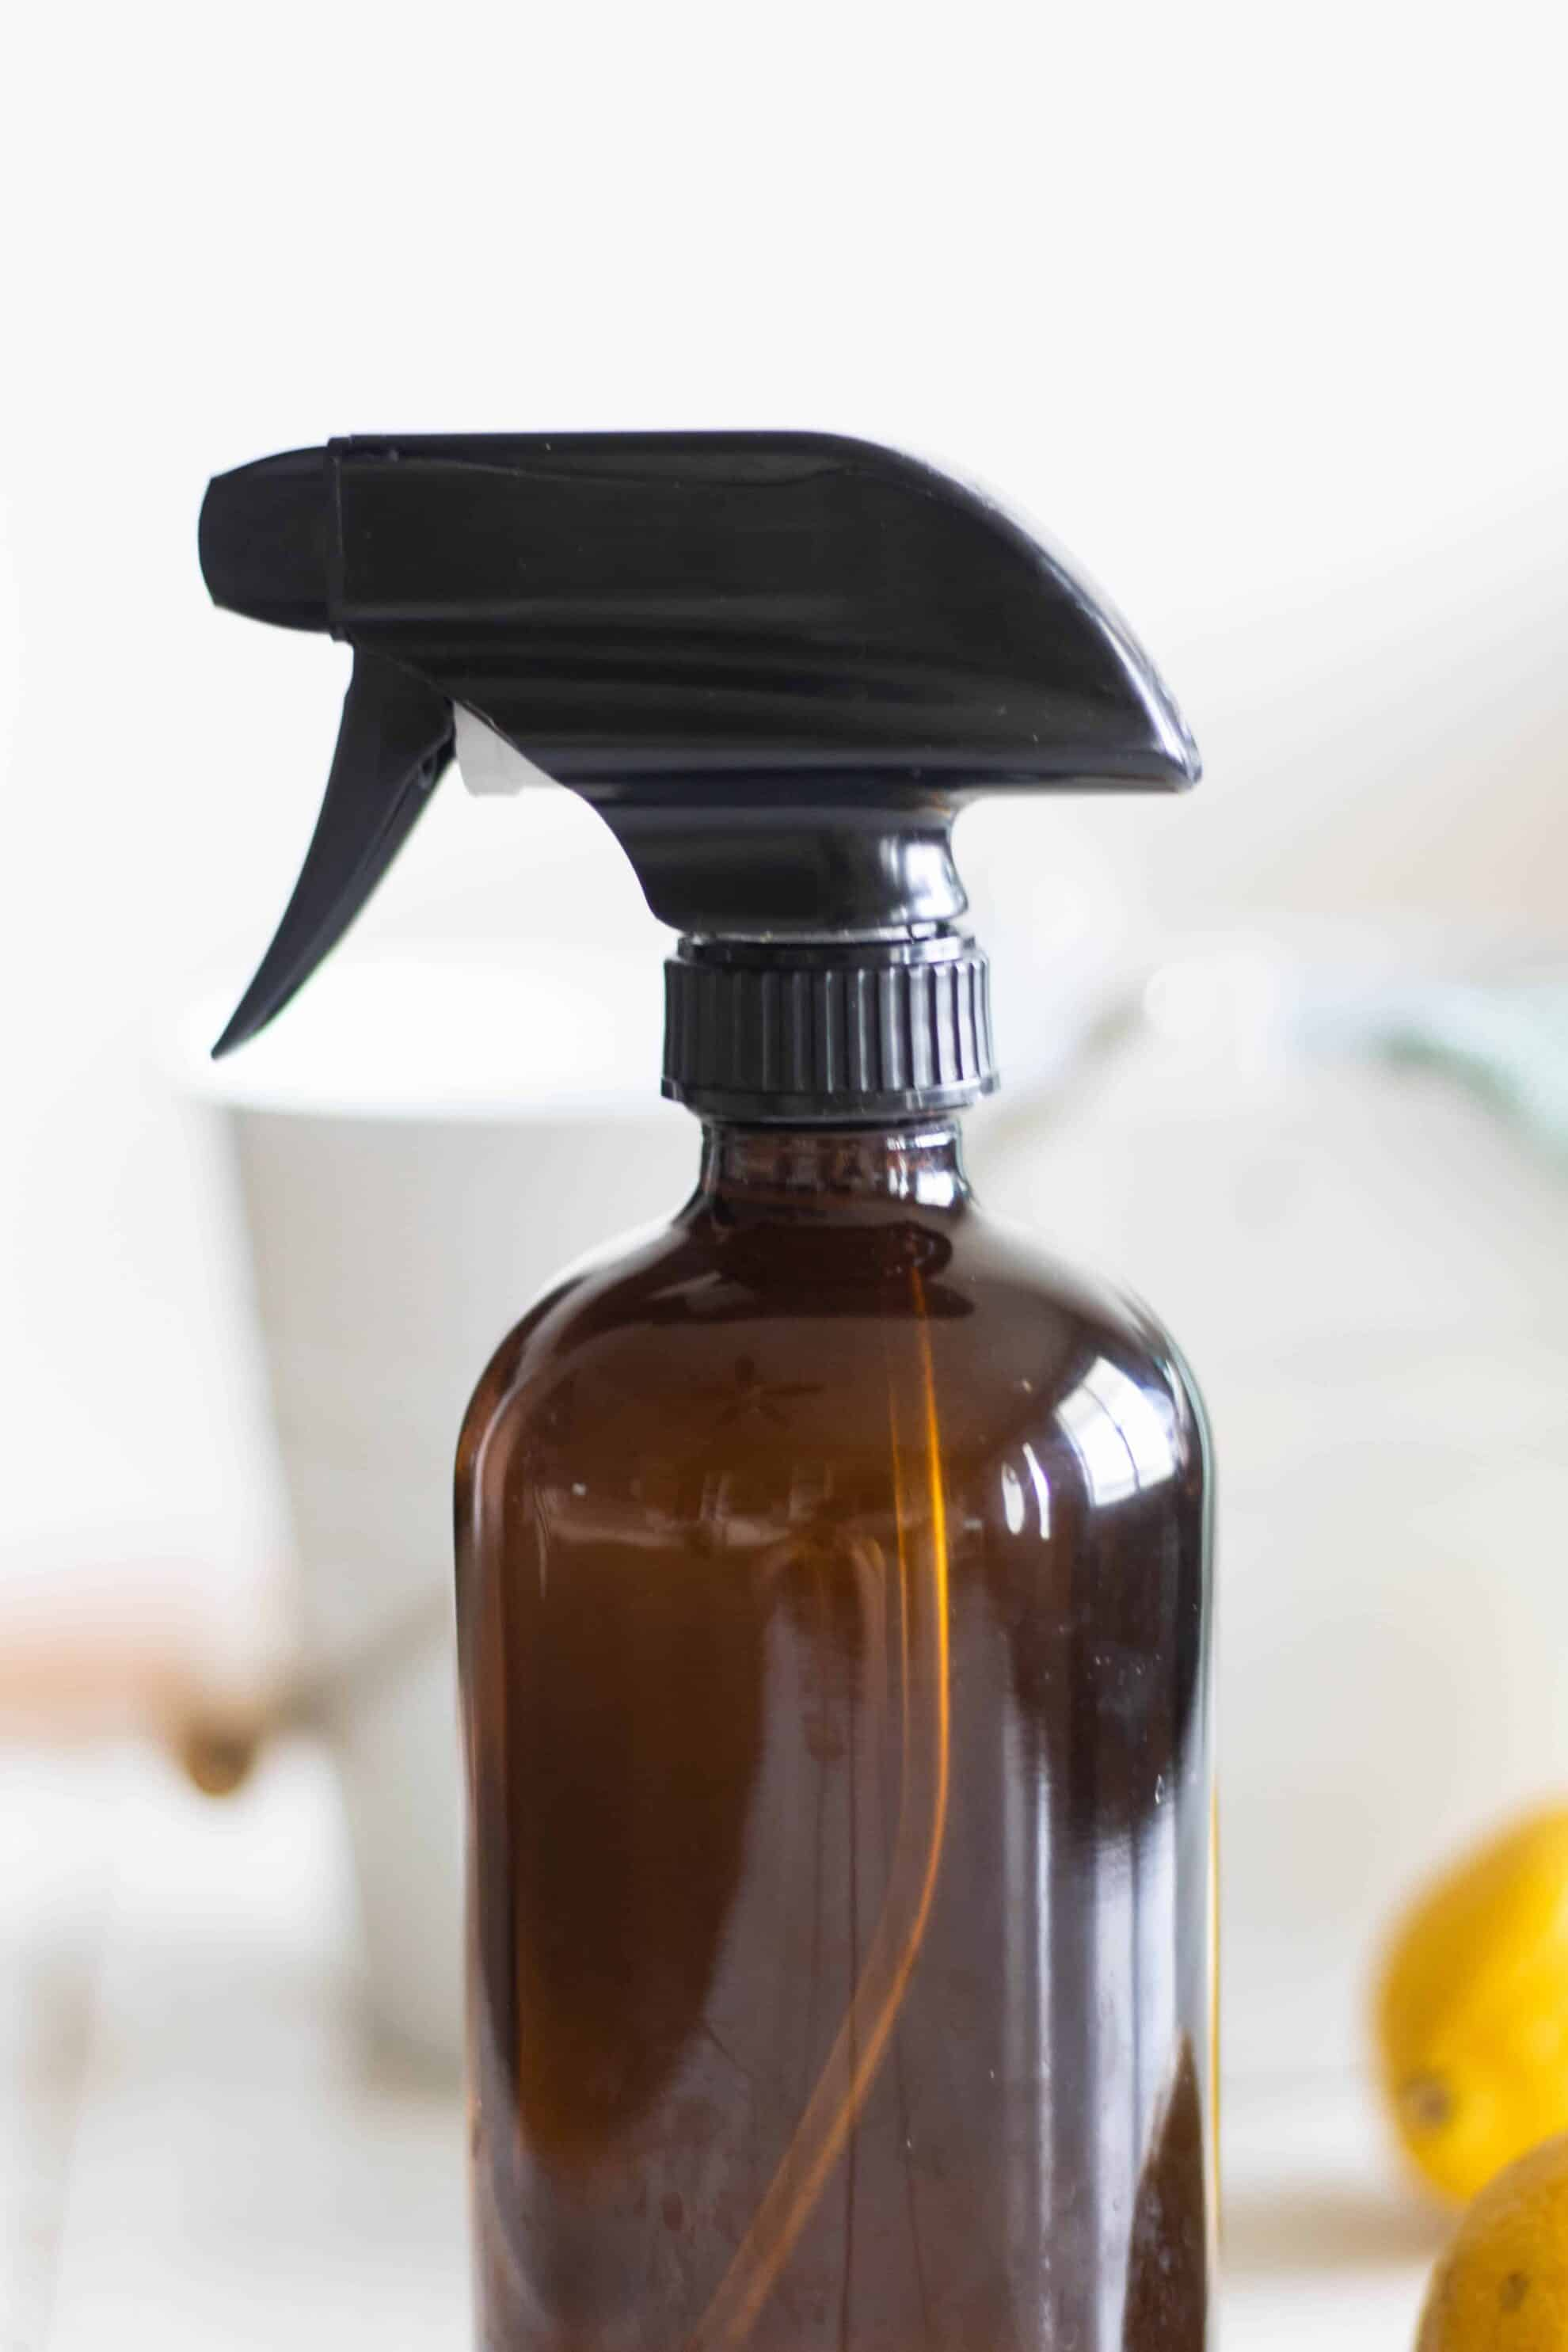 brown glass house cleaner spray bottle